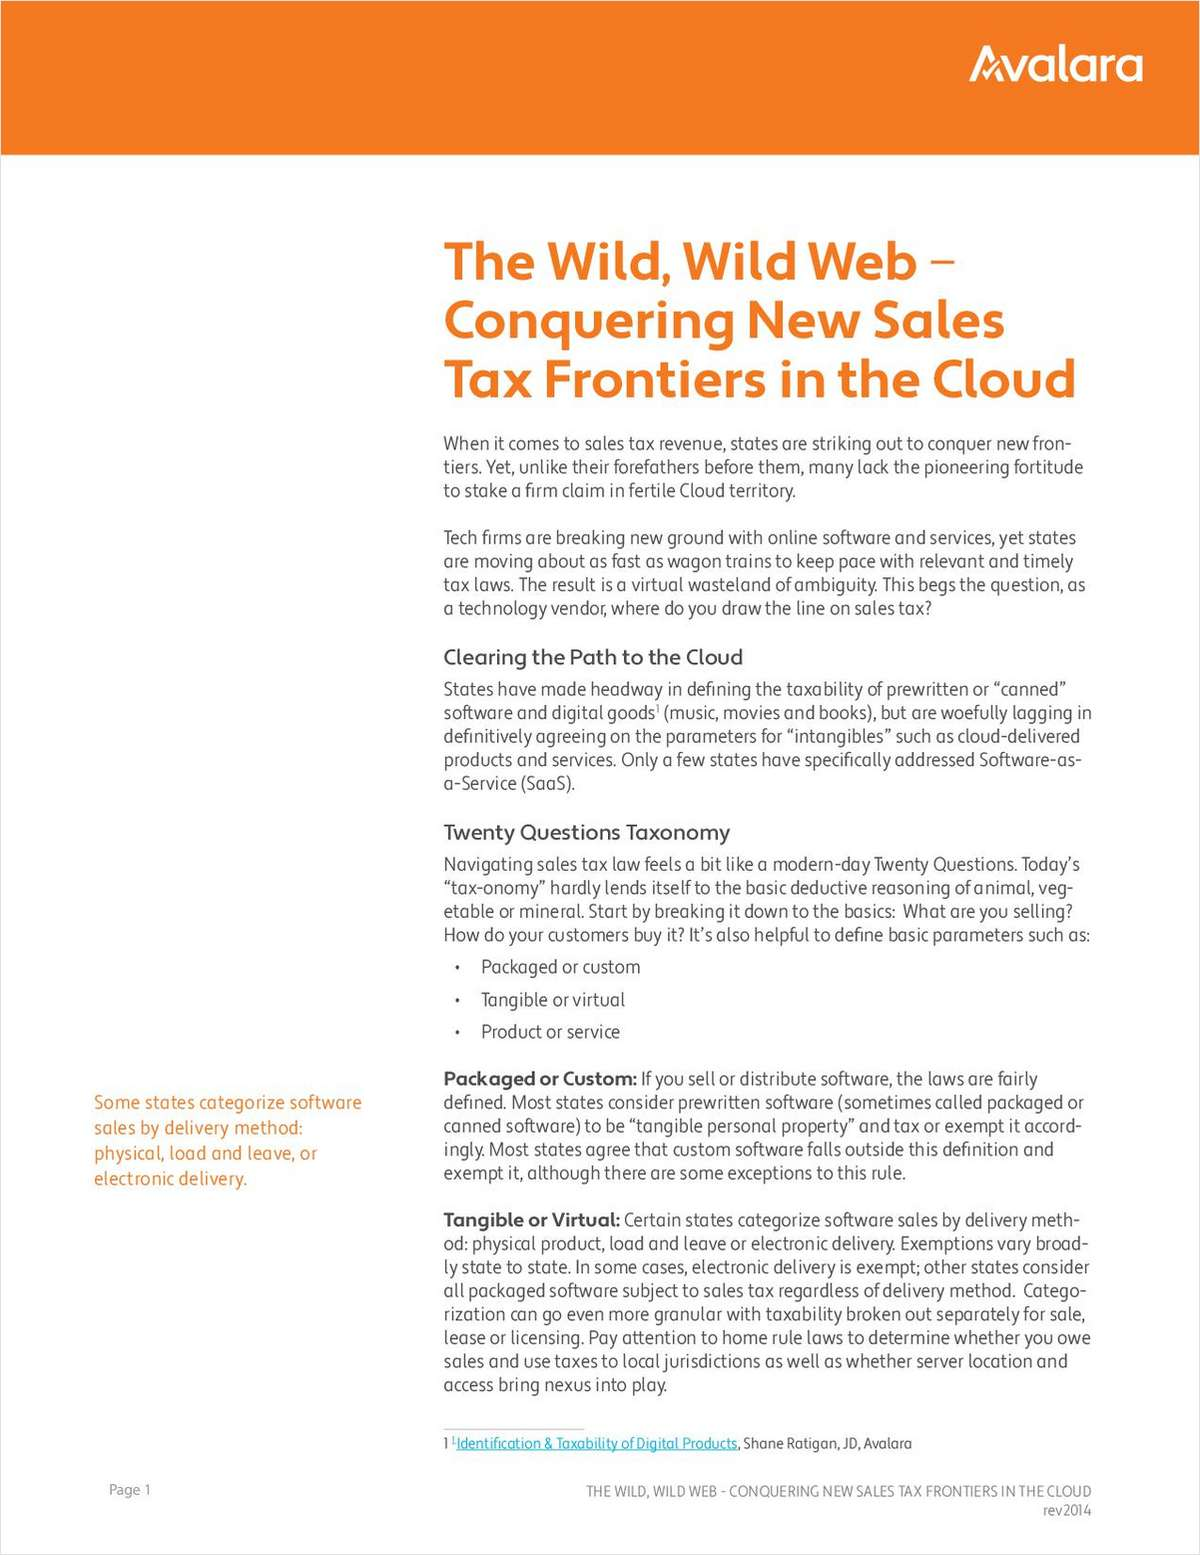 Cloud Commerce and Sales Tax Compliance: Conquering New Frontiers in the Cloud